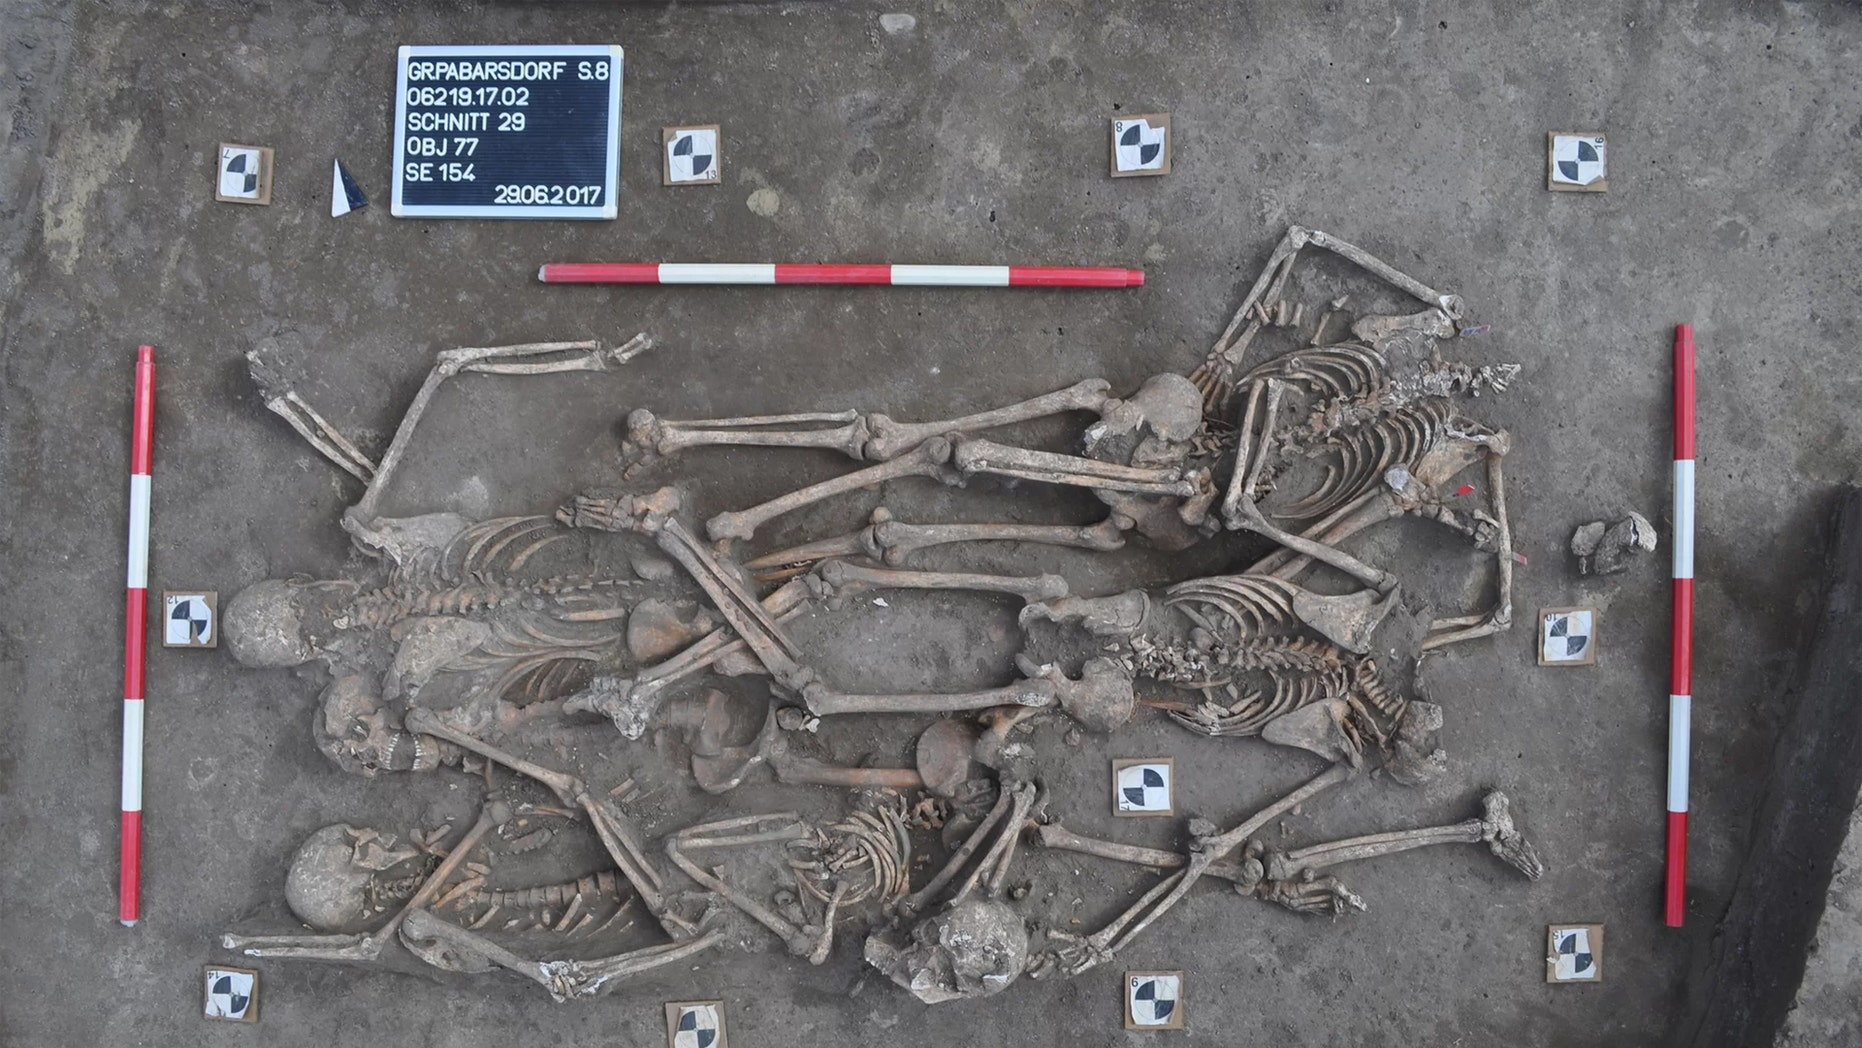 Since excavations began in 2017 in a town northeast of Vienna, several mass graves have been found at the site of one of the biggest battles of the Napoleonic Wars, during which some 55,000 soldiers died in July 1809. Credit: Novetus